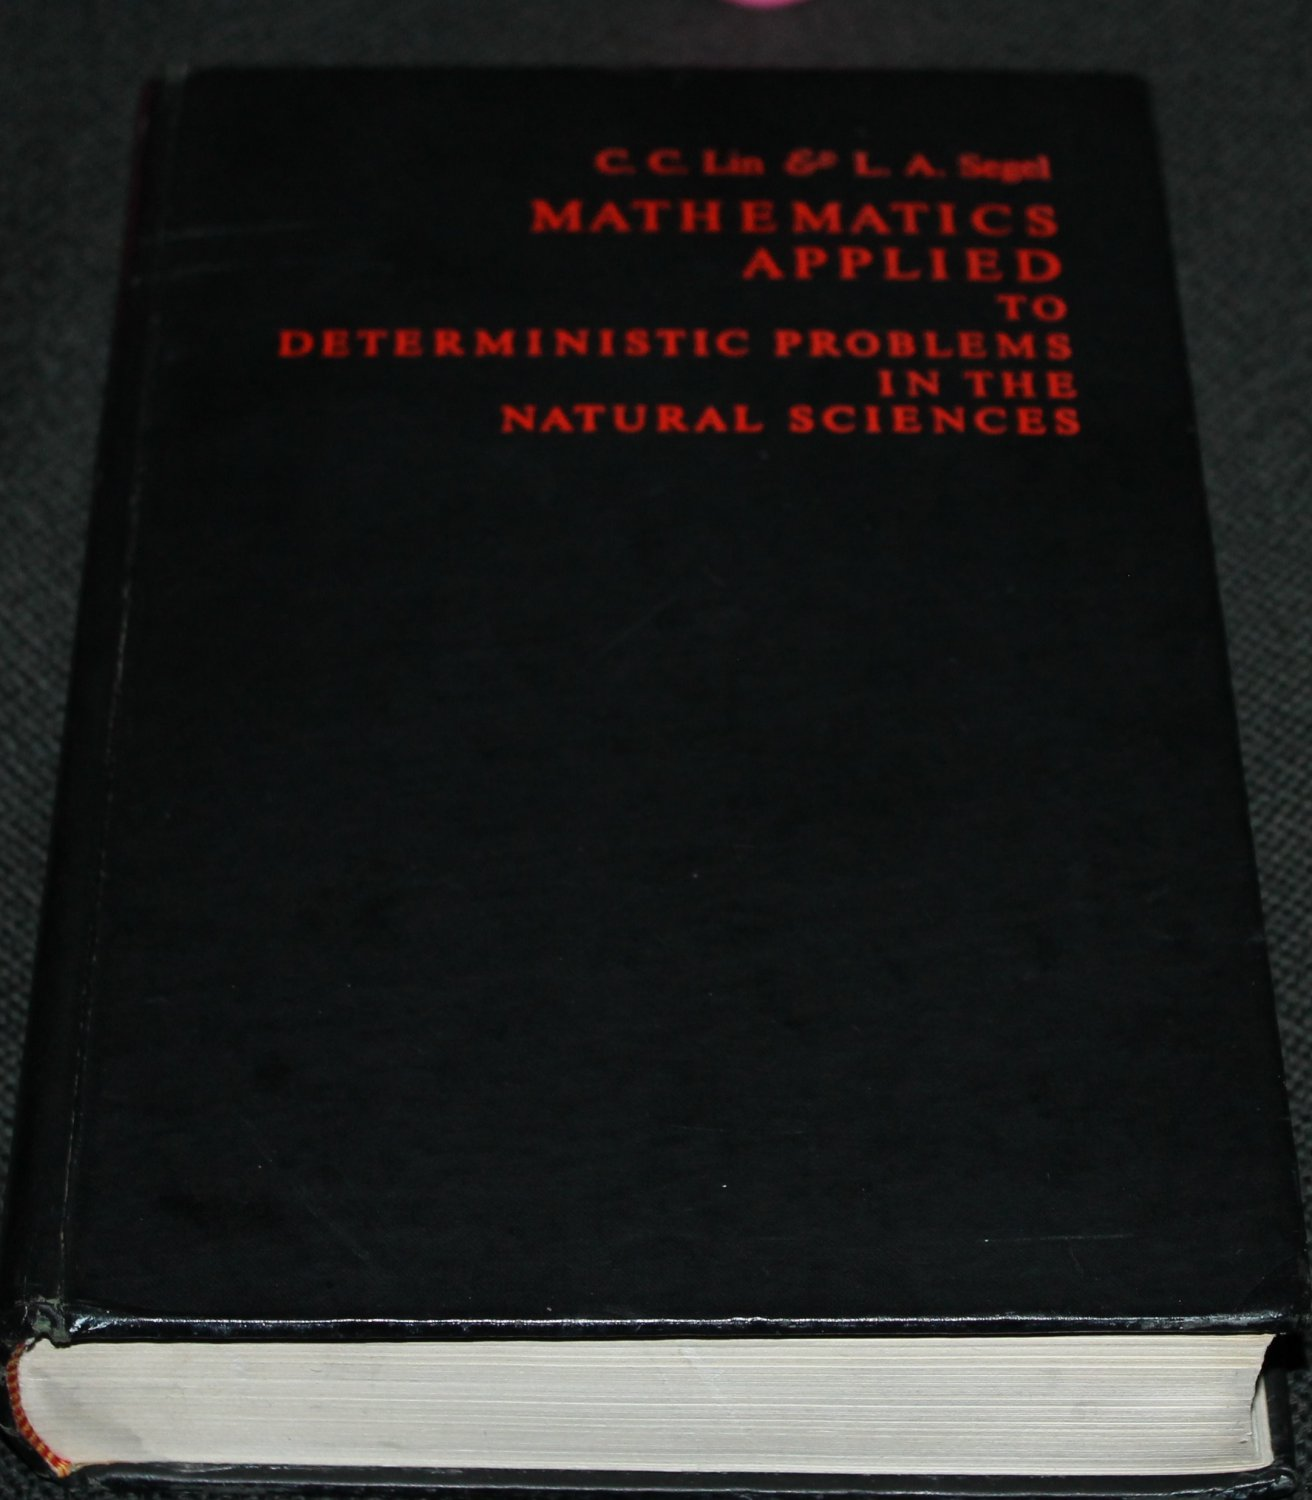 Mathematics Applied Deterministic Problems In The Natural Sciences book by C.C. Lin & L.A. Segel